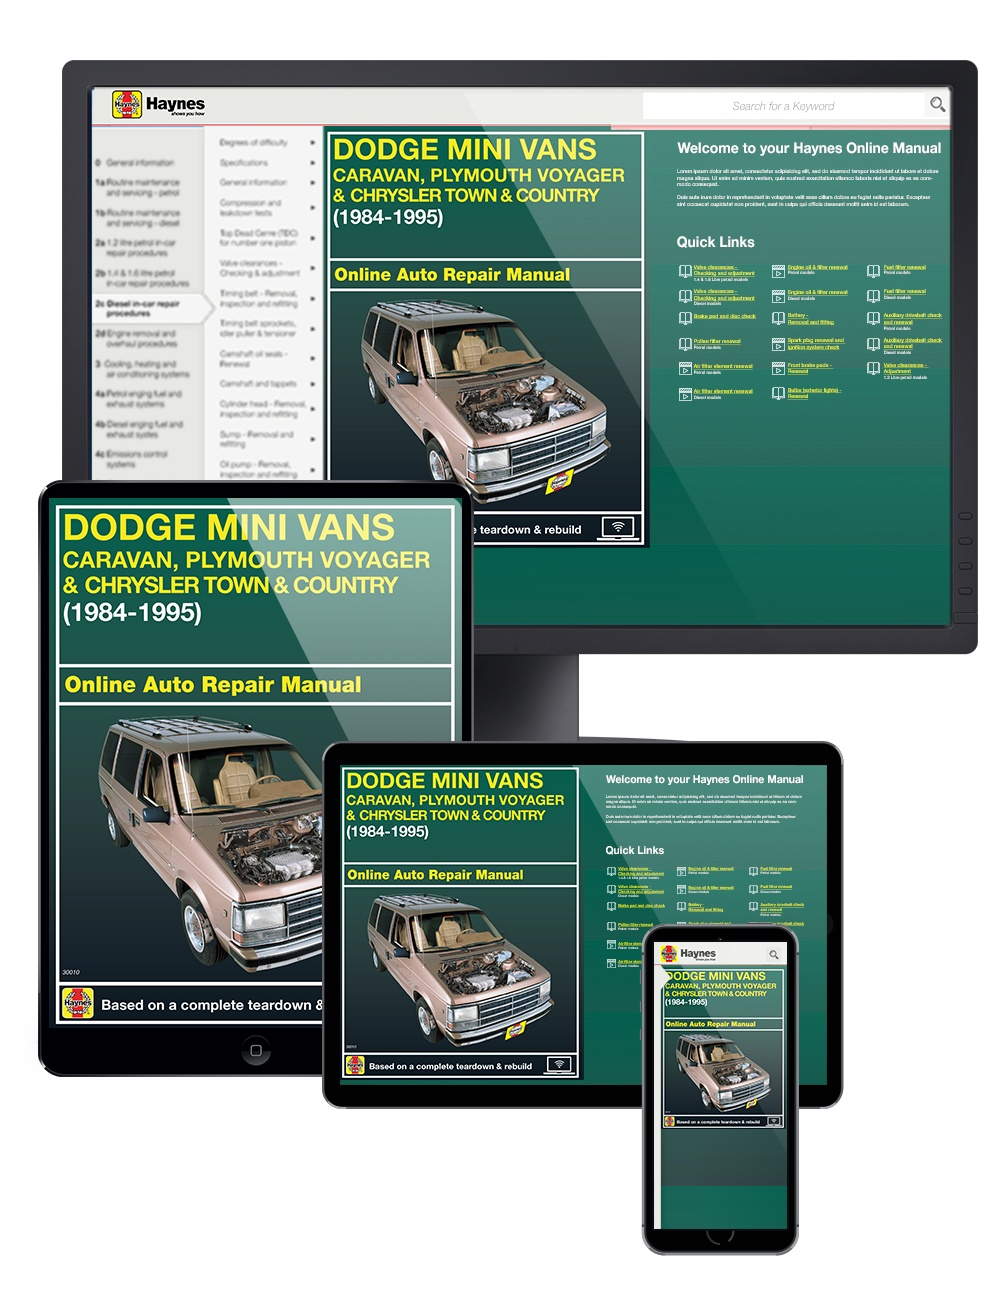 Manual cover for Dodge Caravan, Plymouth Voyager & Chrysler Town & Country (84-95) Haynes Online Manual